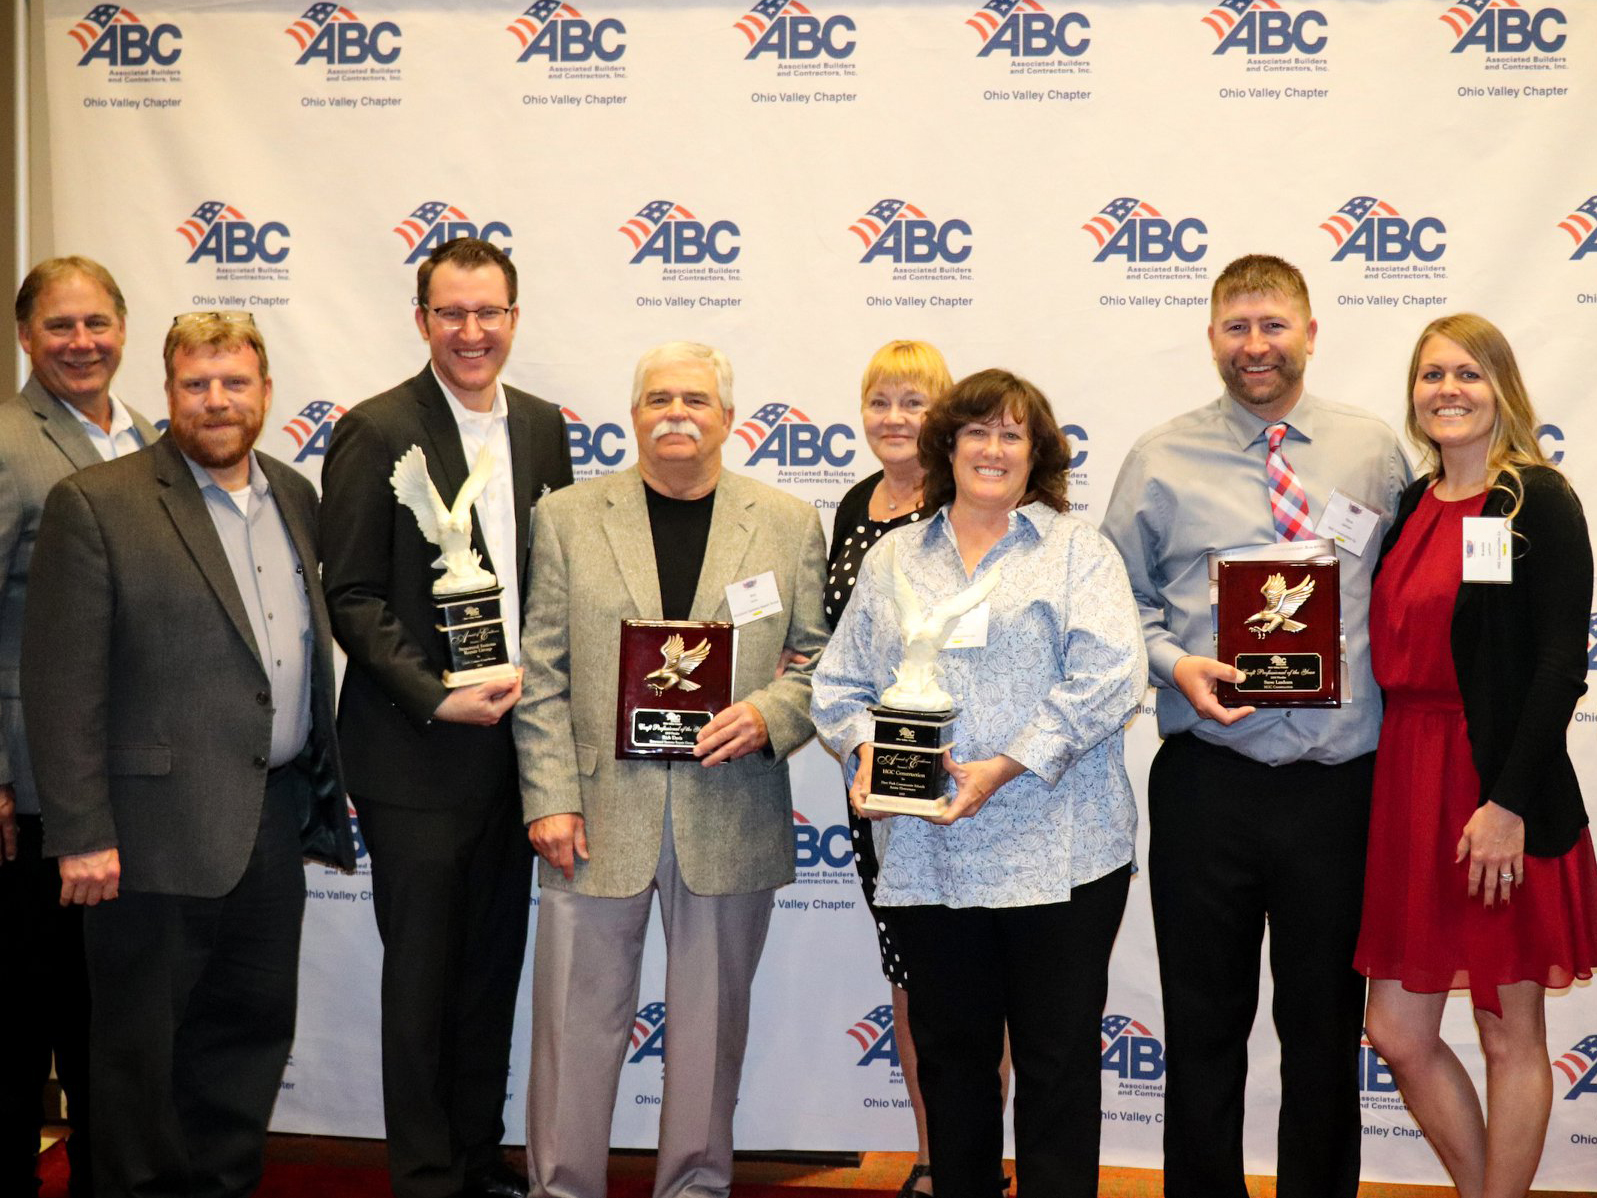 SSRG team and HGC team pose with ABC Ohio Valley awards